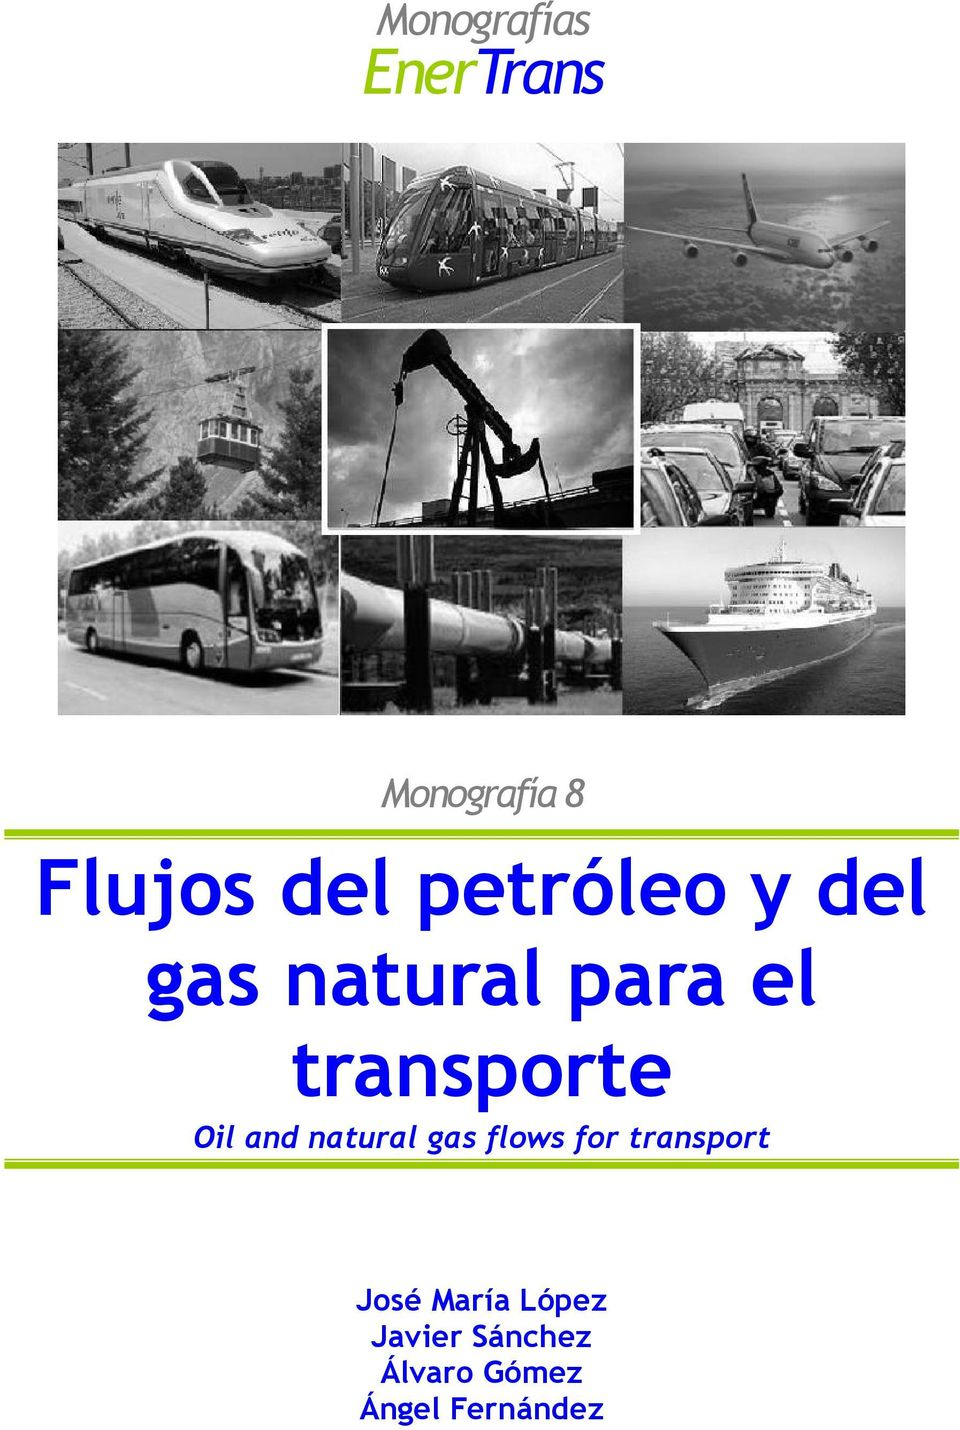 Oil and natural gas flows for transport José